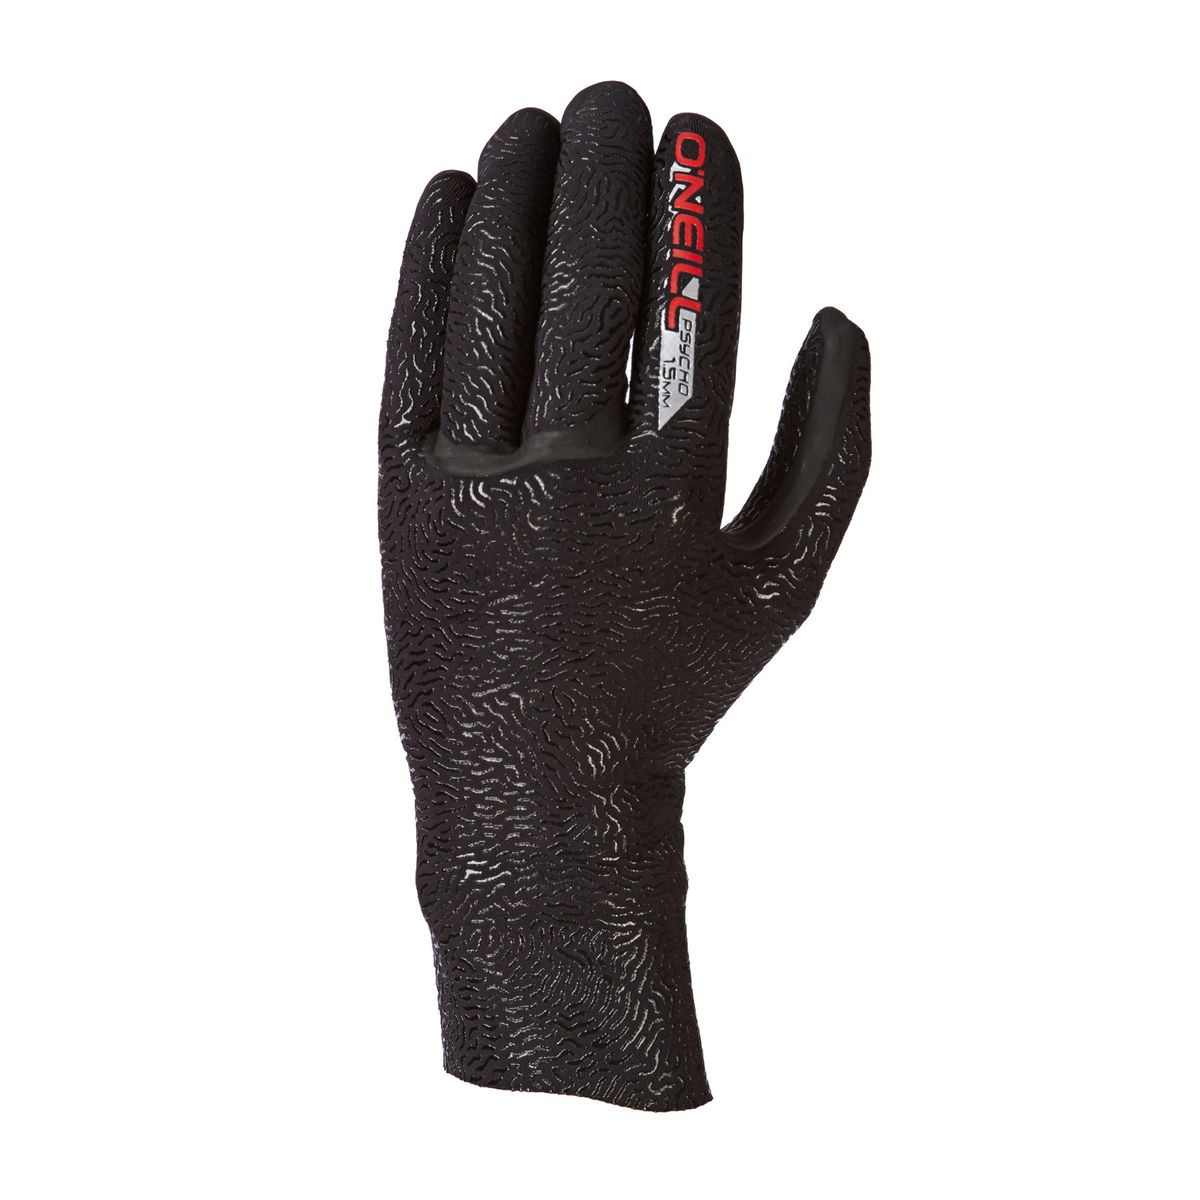 O'Neill Psycho DL 1.5mm 5 Finger Wetsuit Gloves - Black